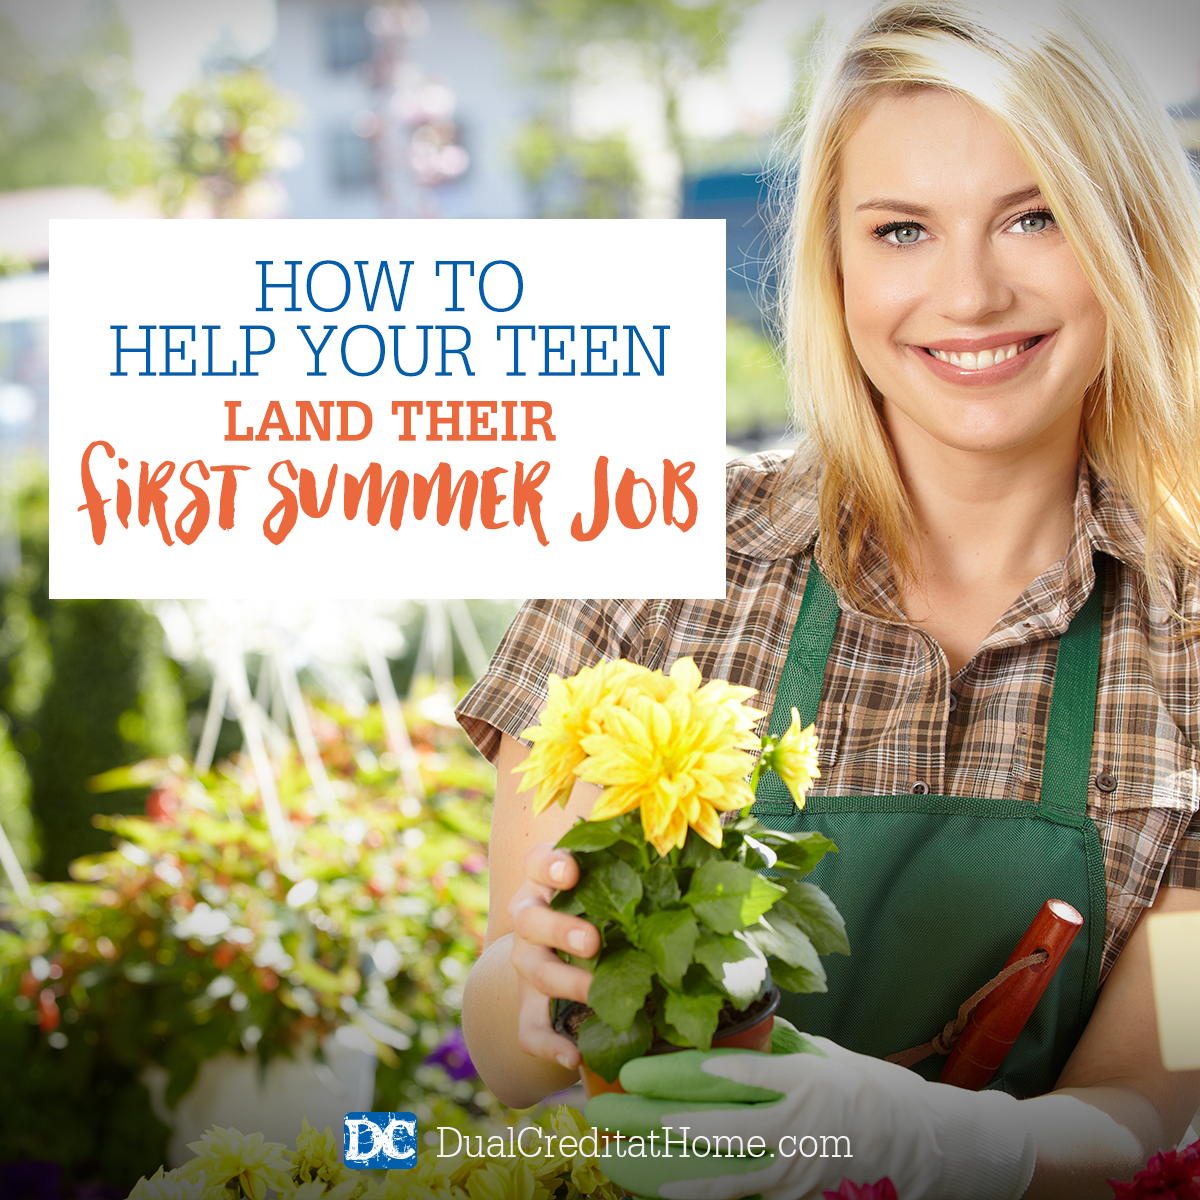 How To Help Your Teen Land Their First Summer Job